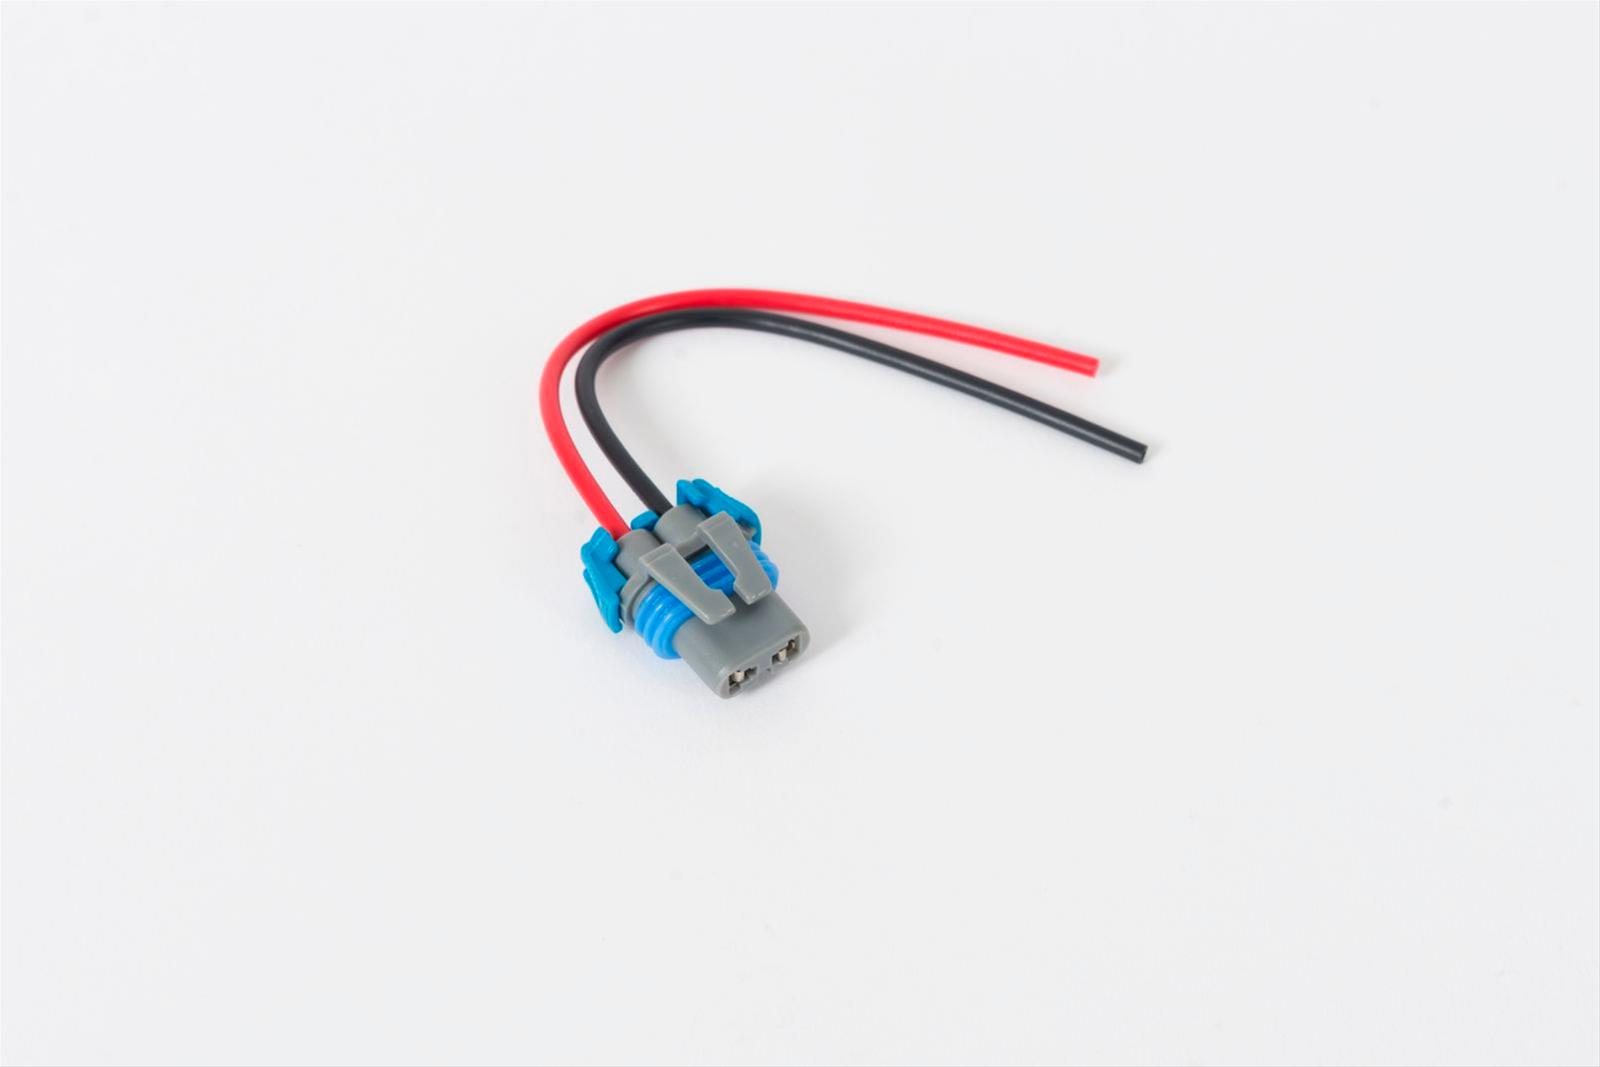 hight resolution of putco fog light wiring harnesses 239006hd free shipping on orders over 99 at summit racing